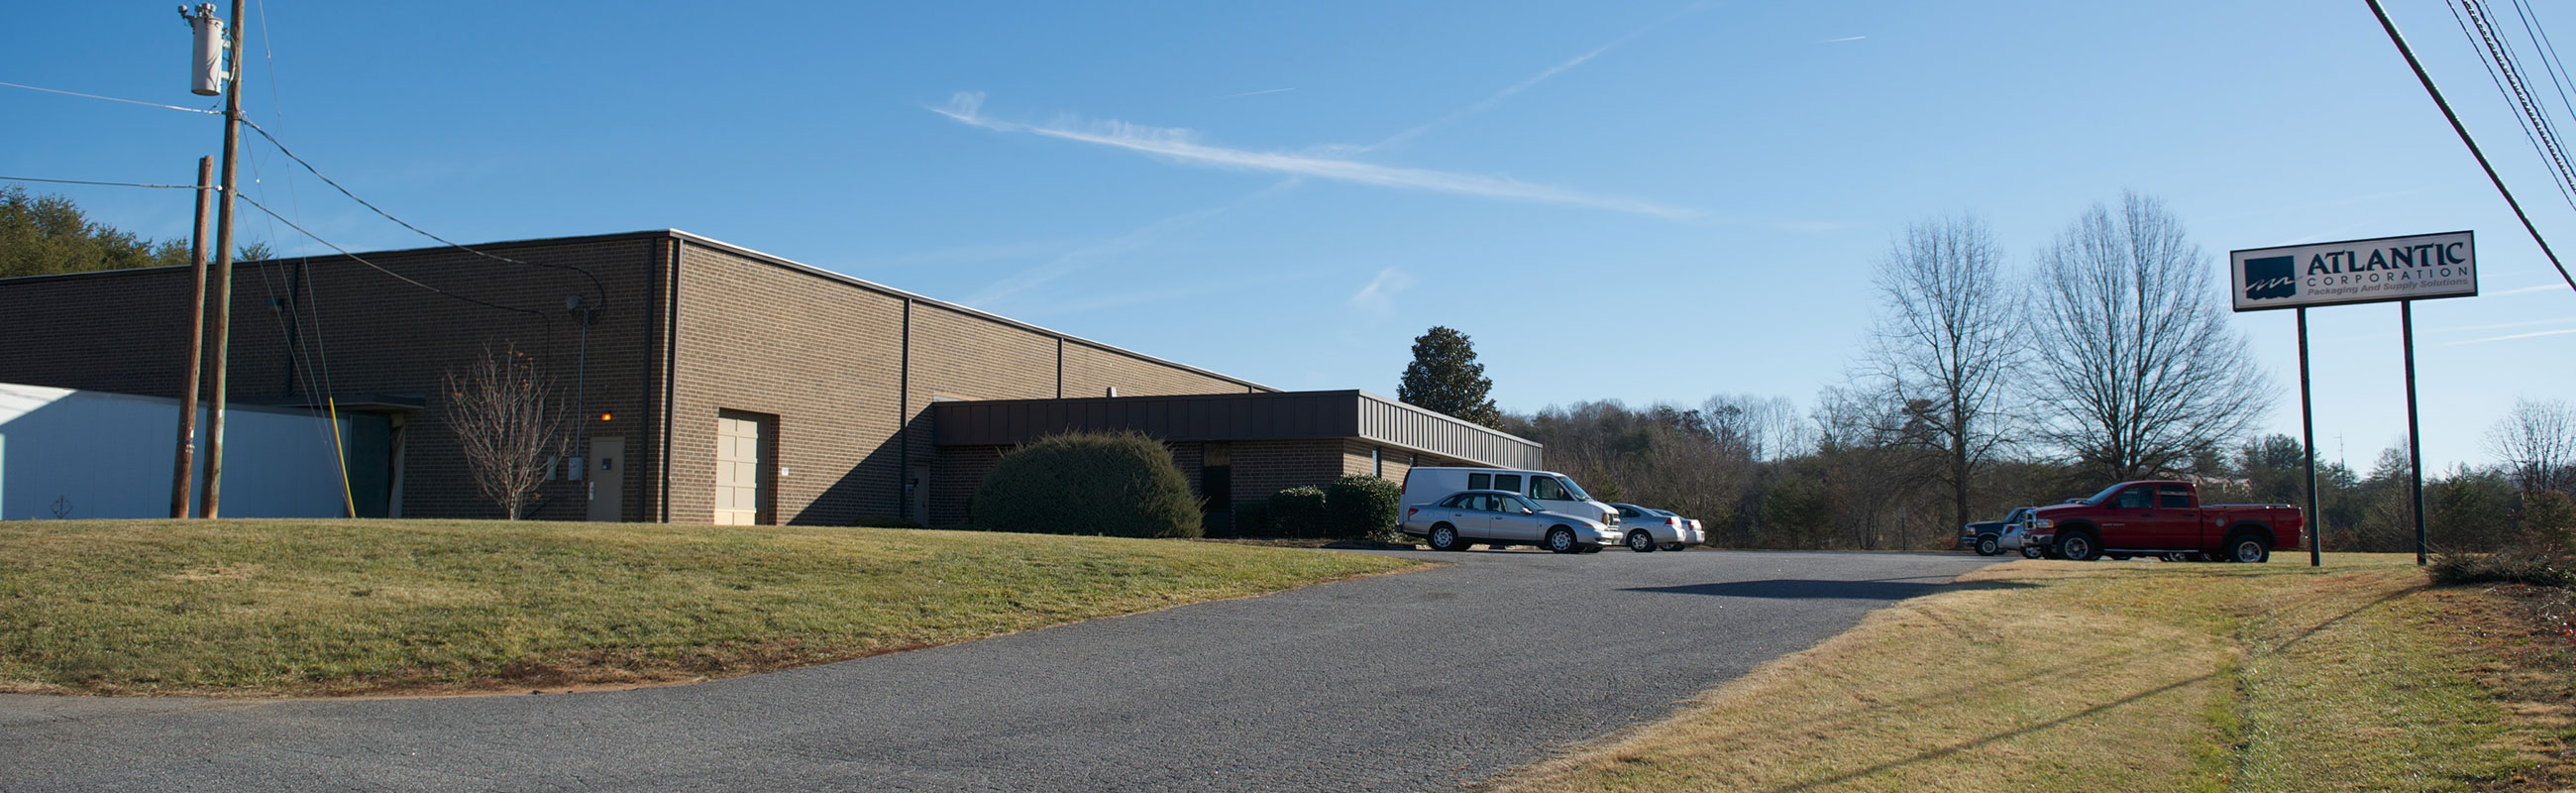 Hickory, NC - Atlantic Packaging Branch